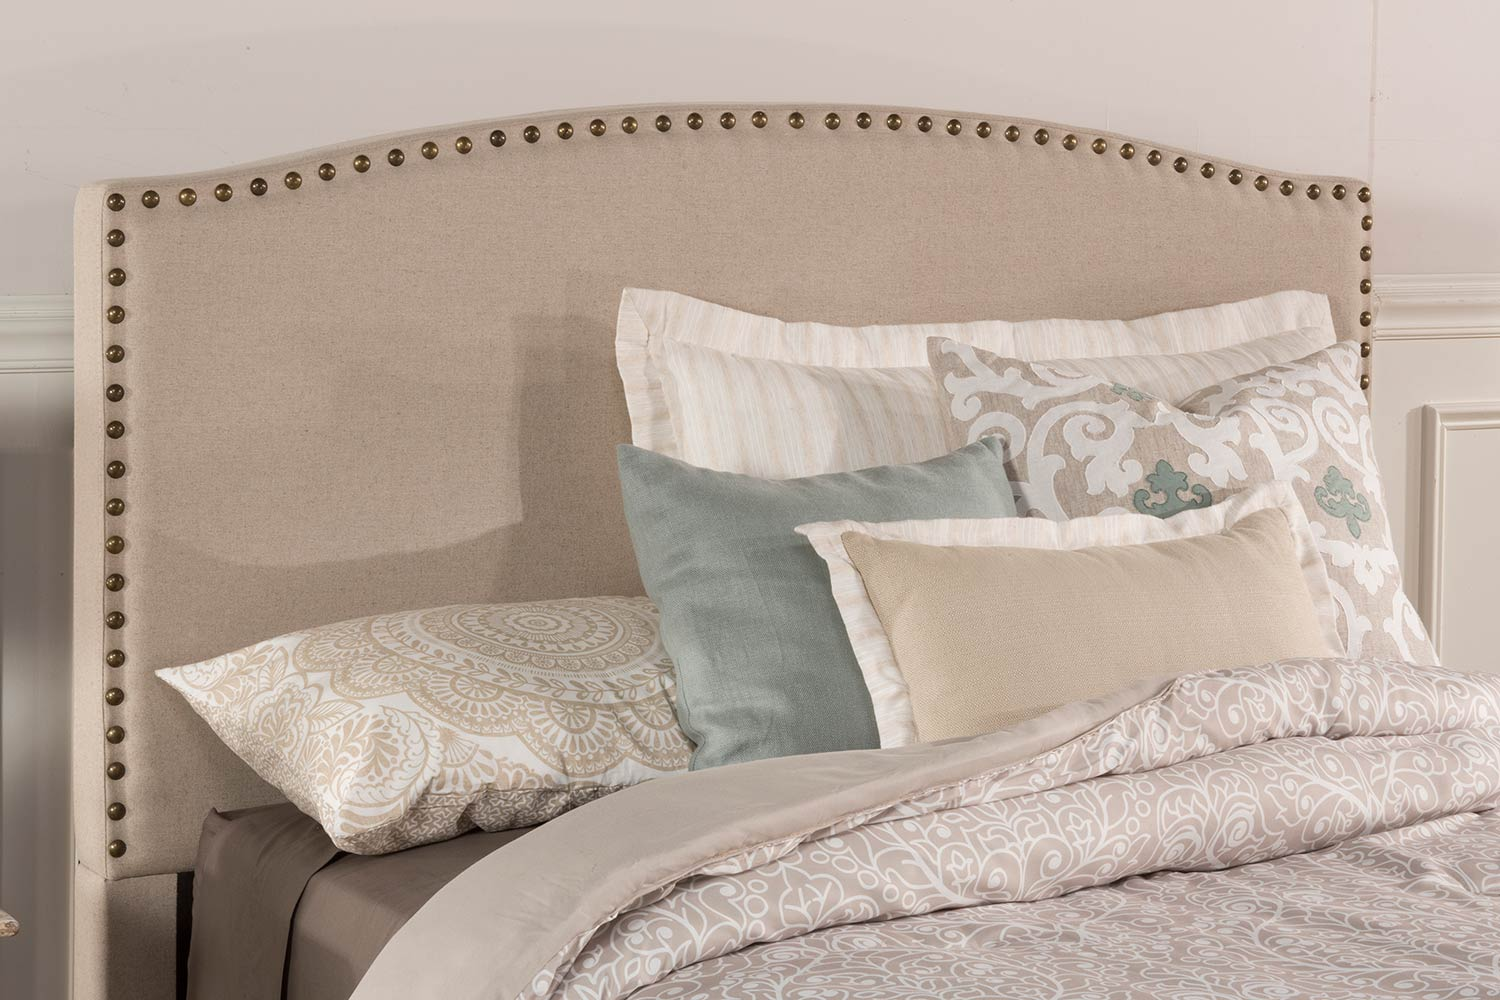 Hillsdale Kerstein Headboard - Light Taupe